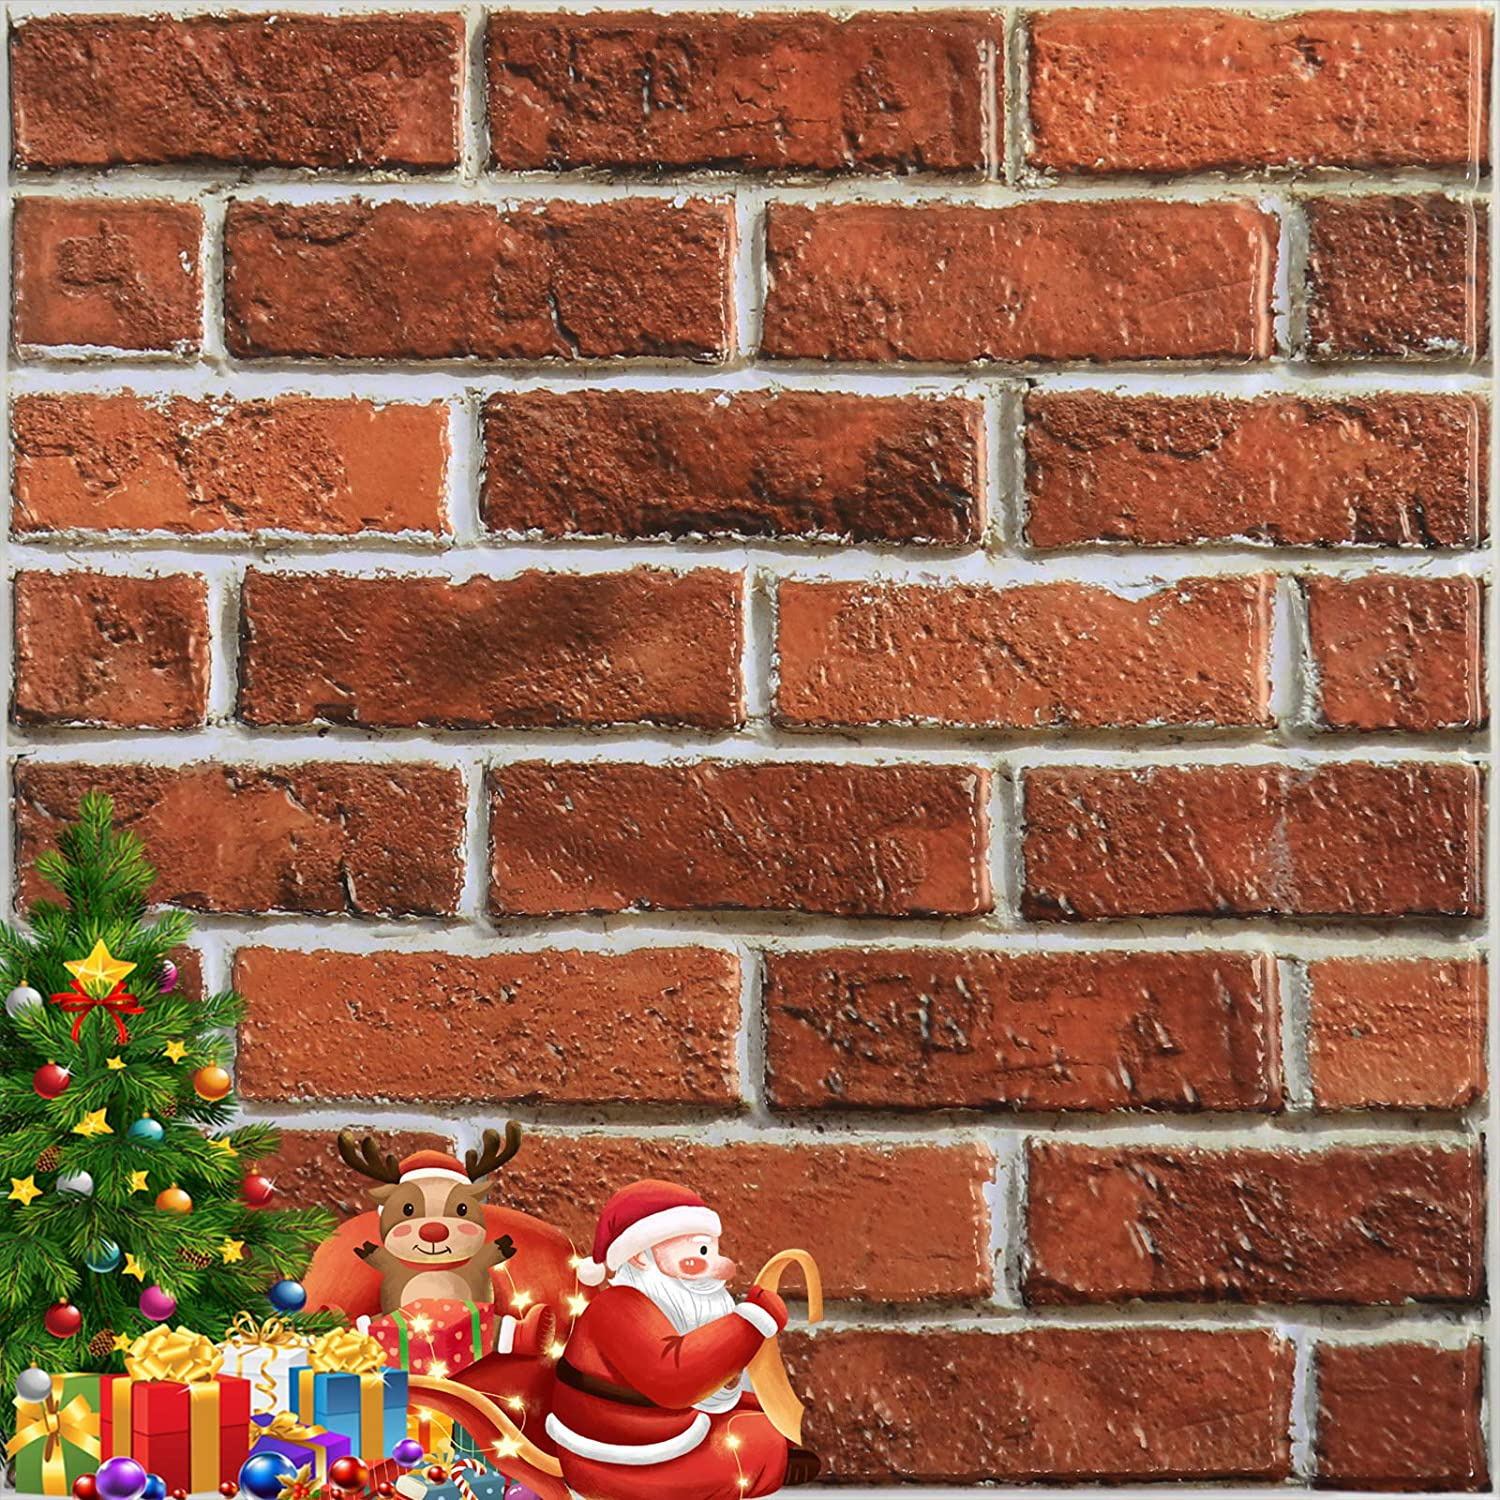 """Yenhome 3D Brick Wall Panels for Interior Wall Decor 11.8""""x11.8"""" Red Brick Wallpaper for Christmas Fireplace Home Decoration Self Adhesive Peel and Stick Wall Tile Foam Wall Sticker Bedroom 12 Pack"""